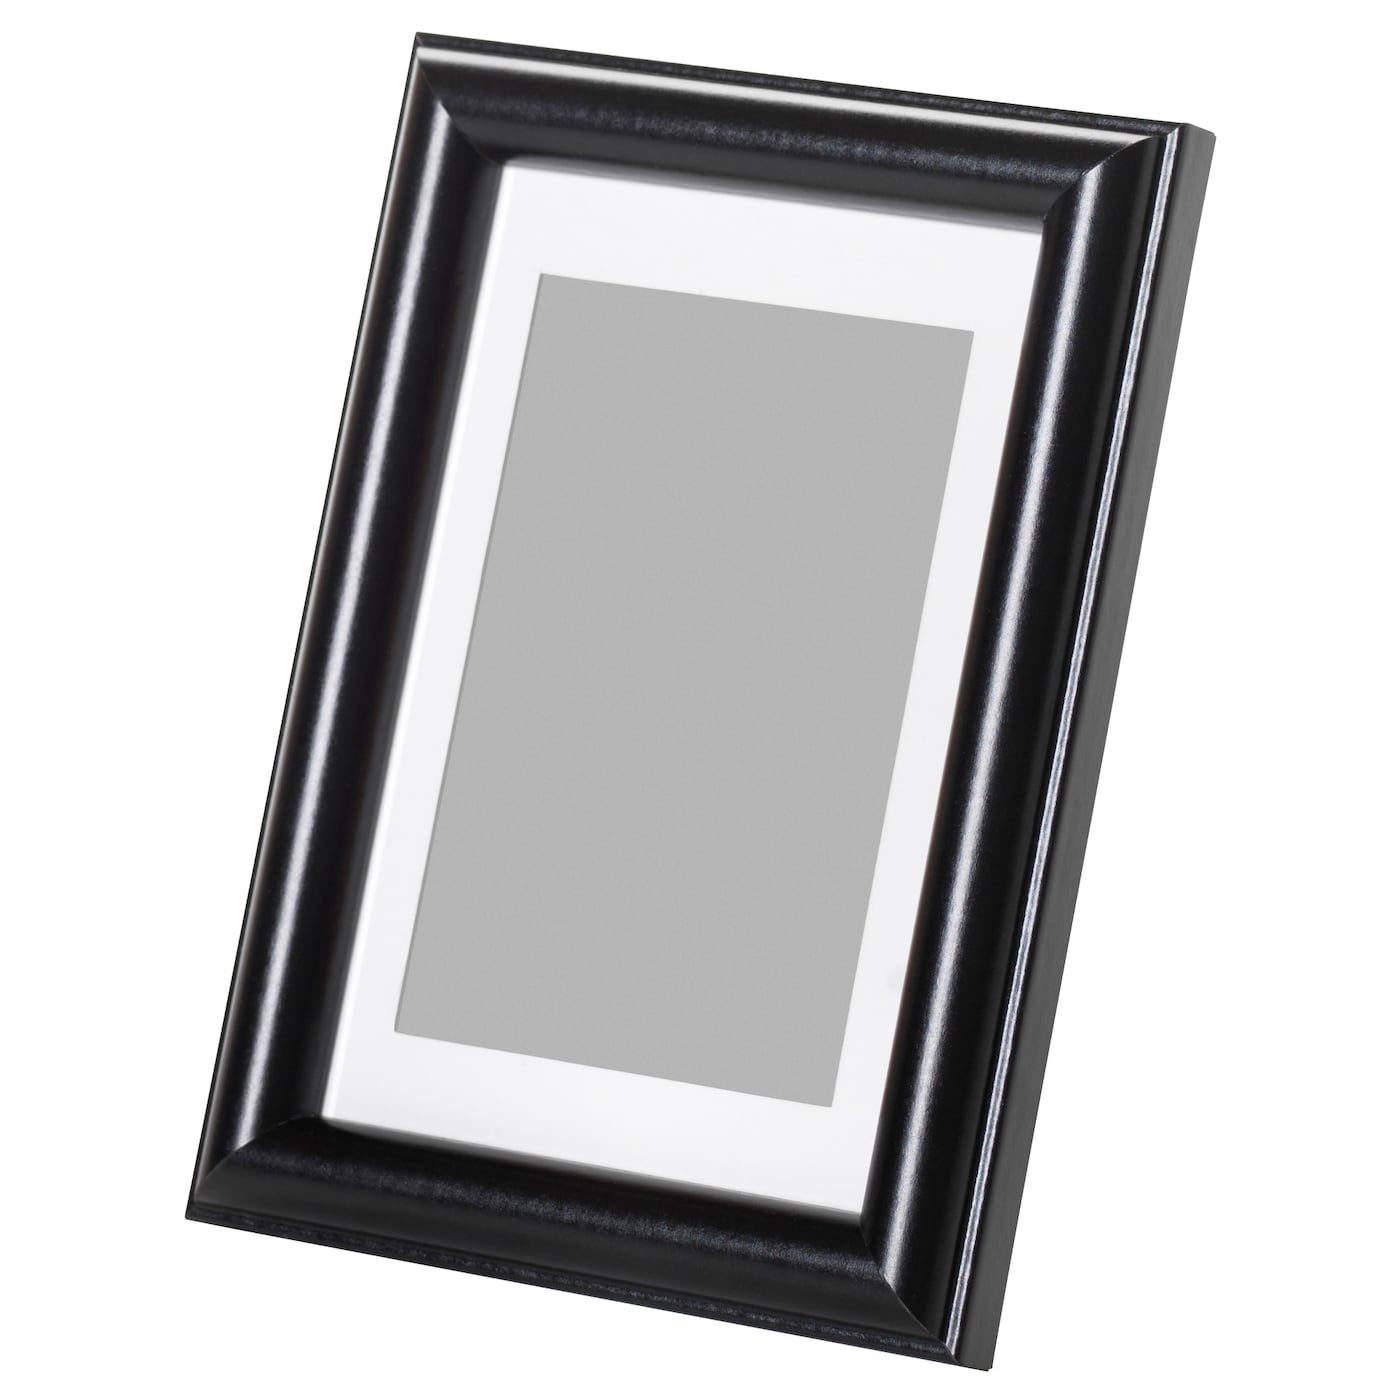 IKEA MARIETORP frame Can also be used without mount, to take a larger picture.